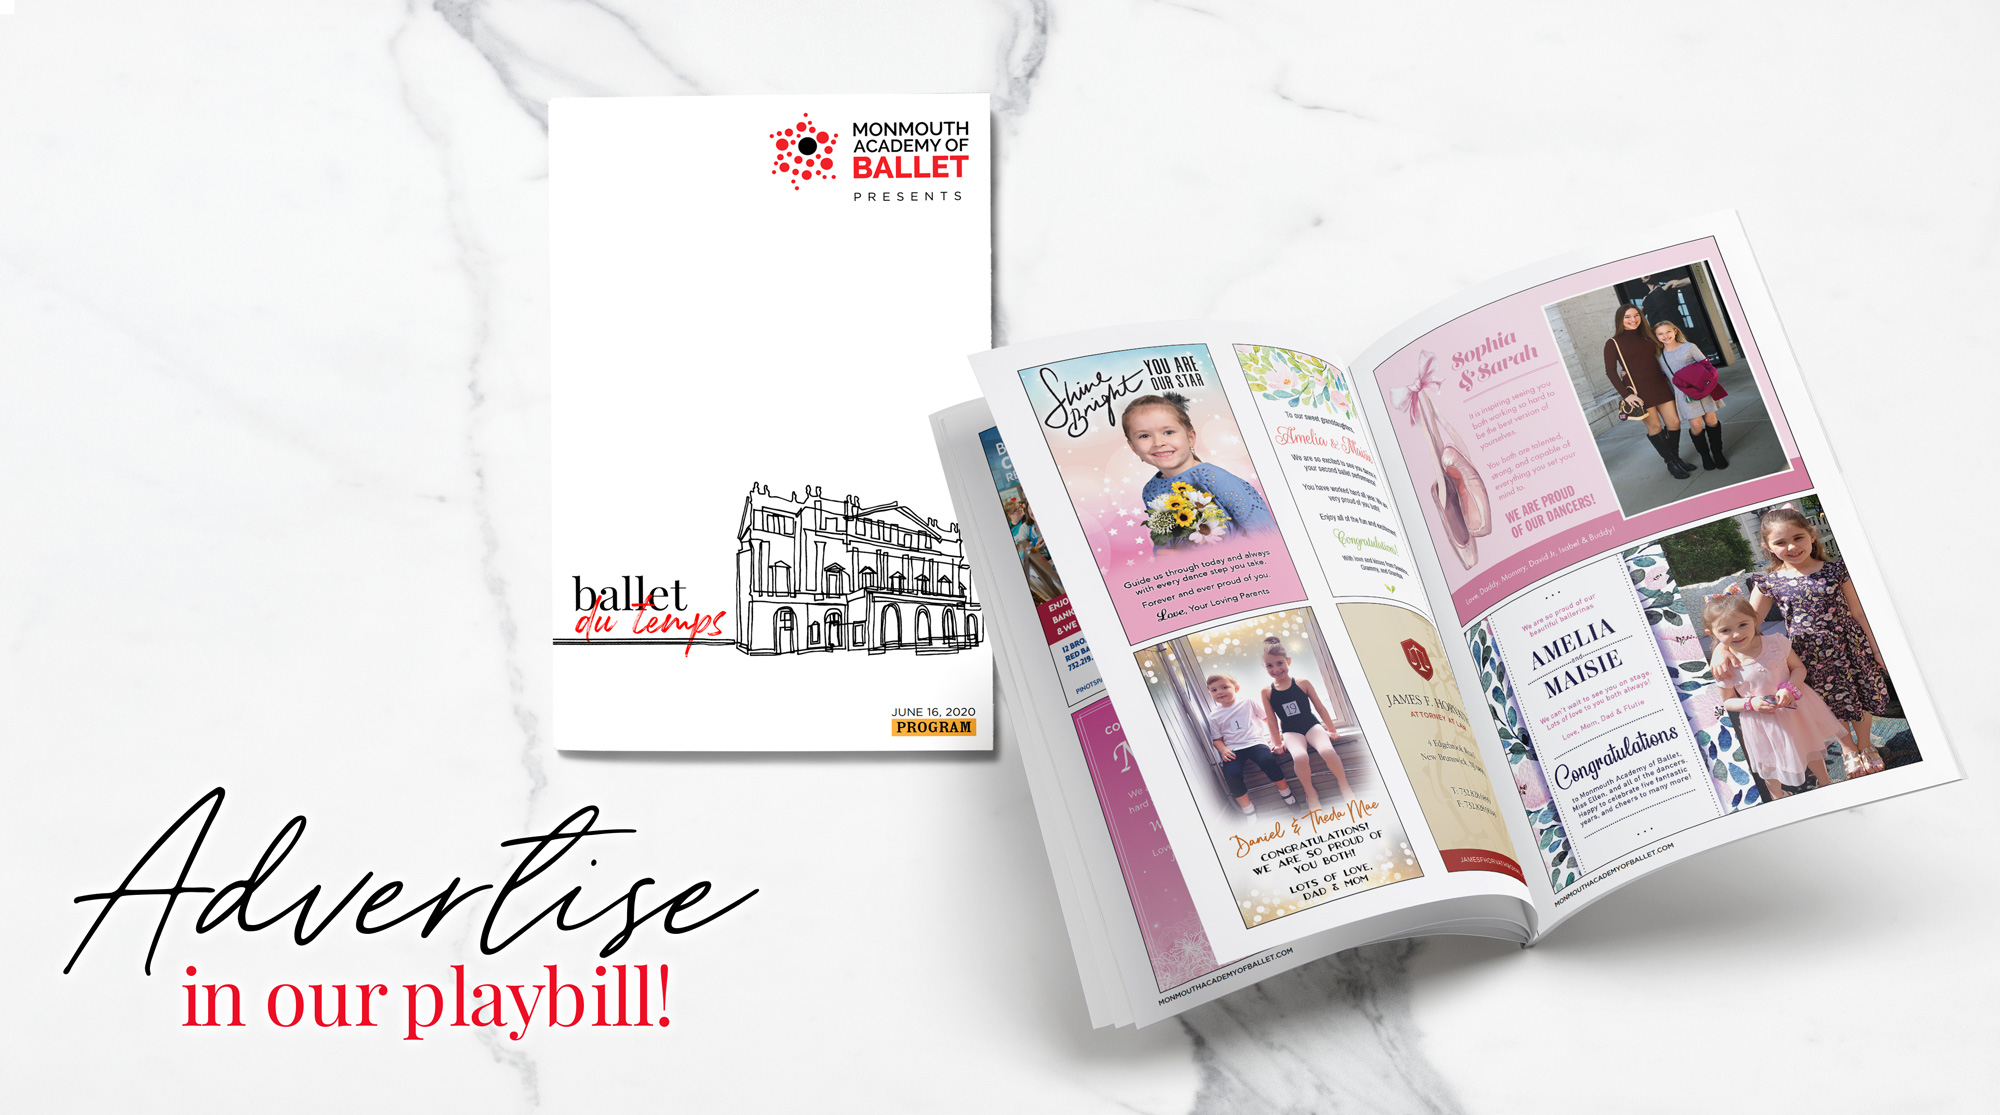 Advertise in Our Playbill